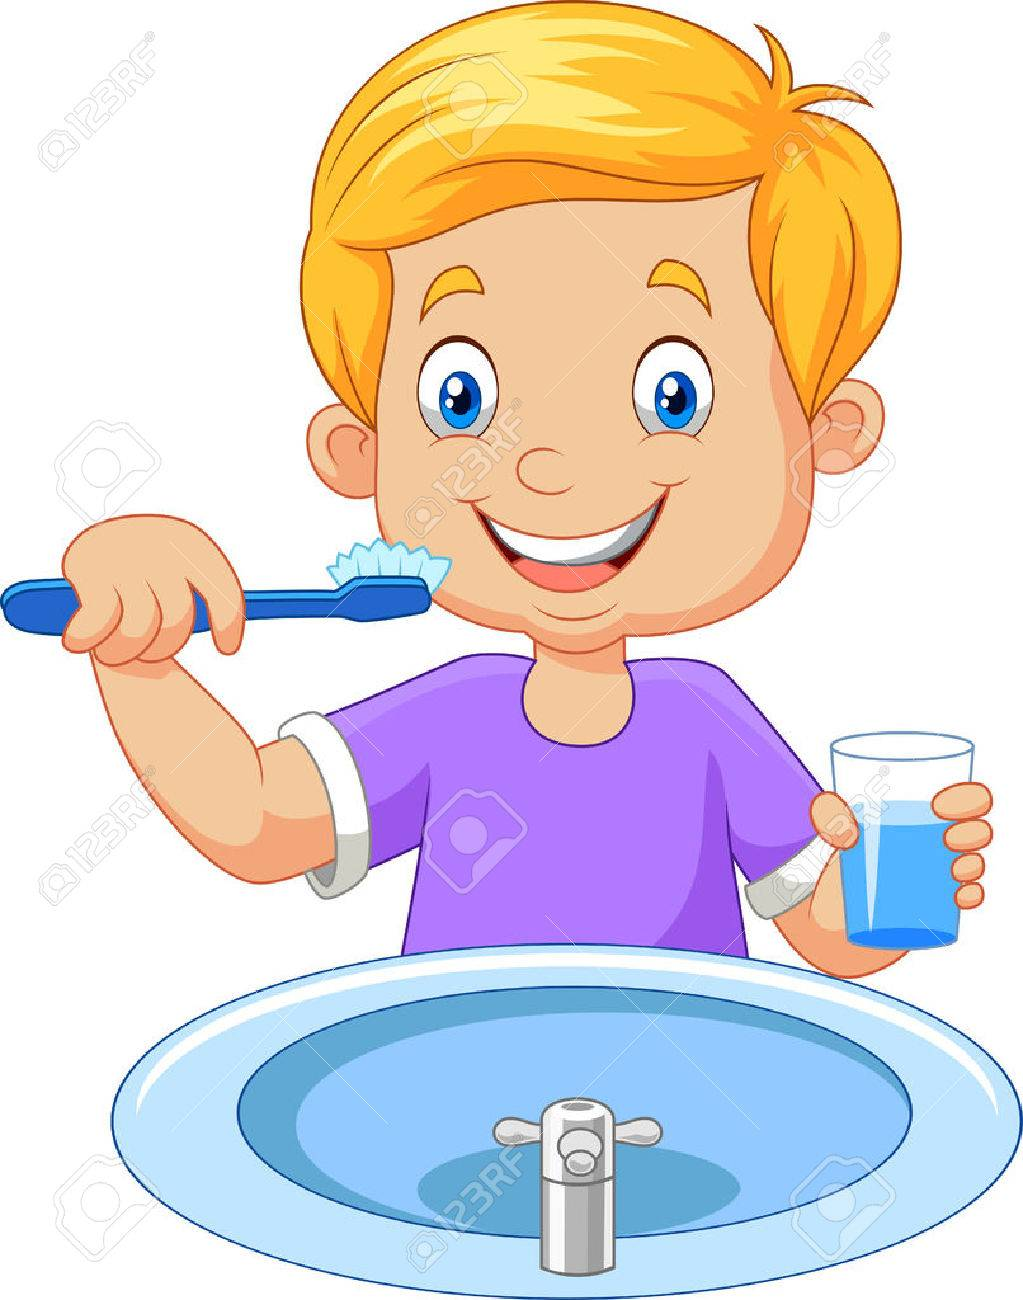 vector illustration of cute little boy brushing teeth royalty free